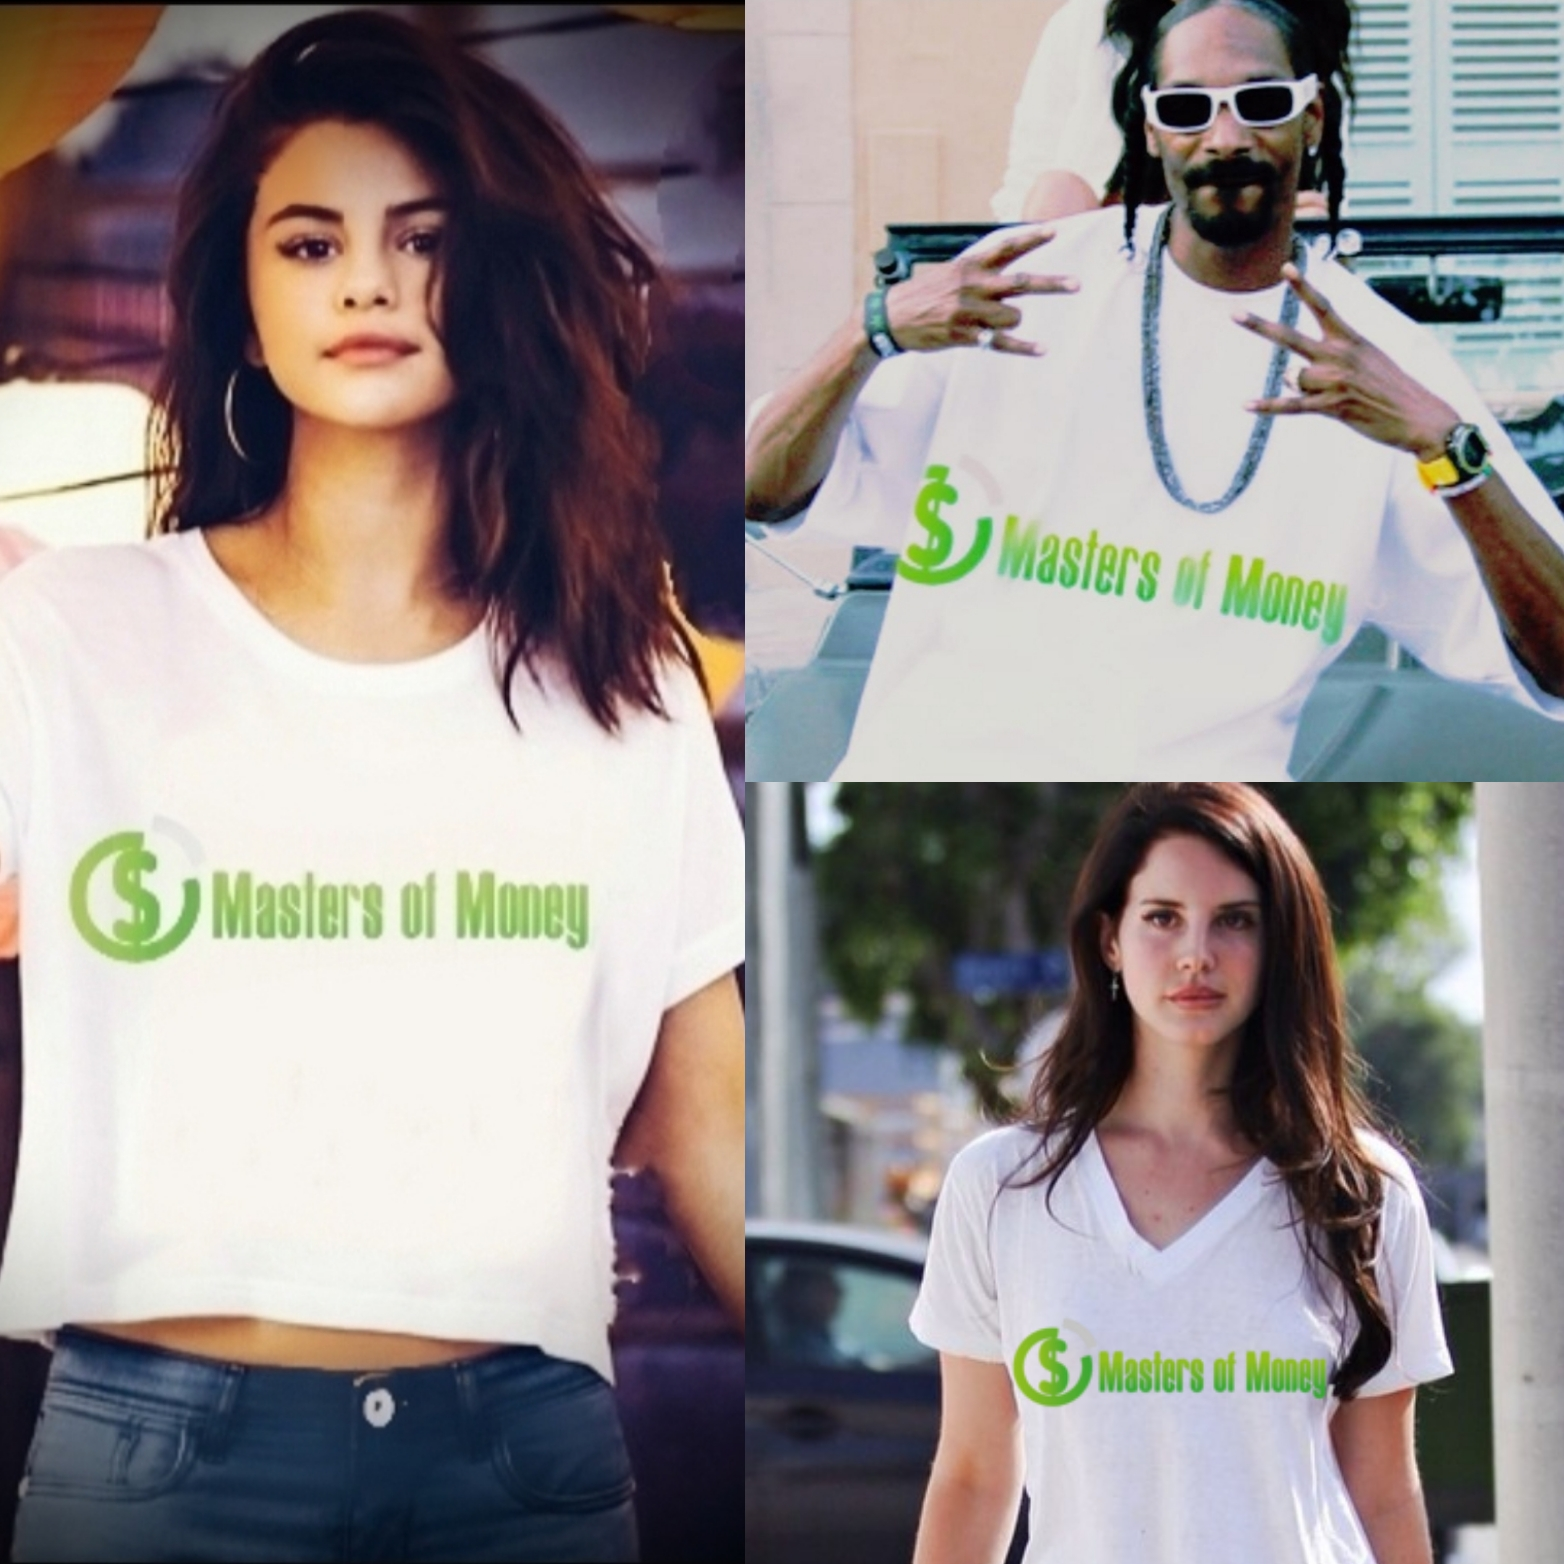 Selena Gomez Snoop Dogg and Lana Del Rey Wearing Masters of Money T-shirts Collage